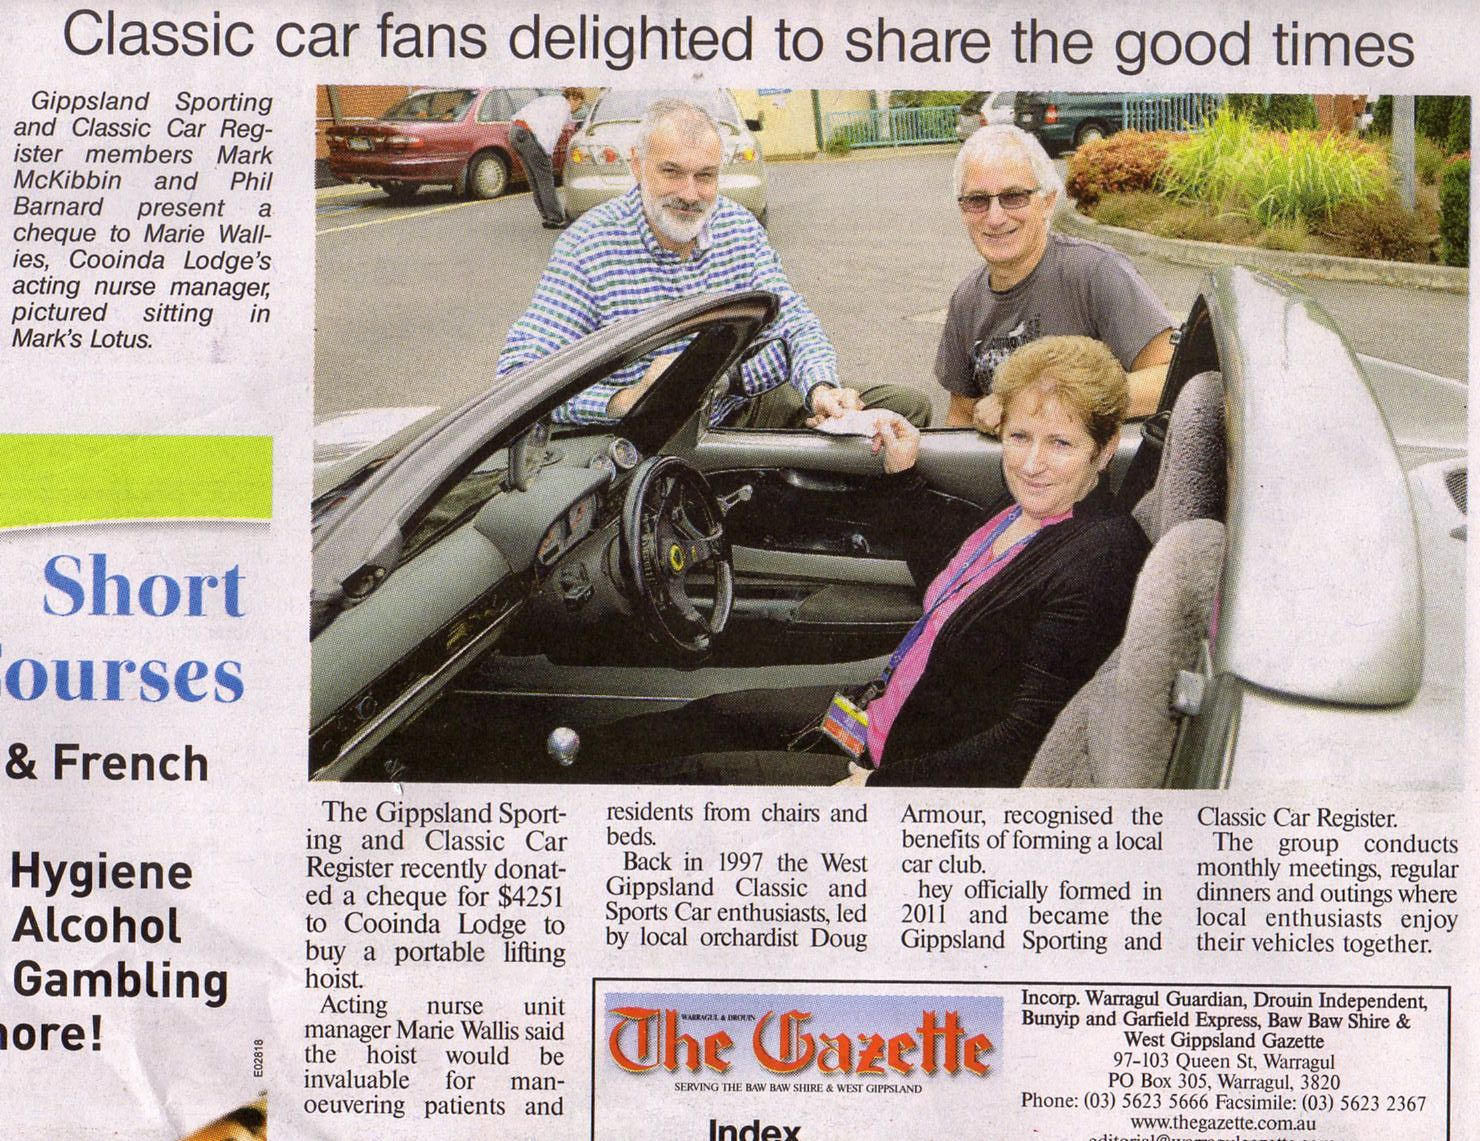 From the Warragul Gazette, Tuesday 4th March 2014